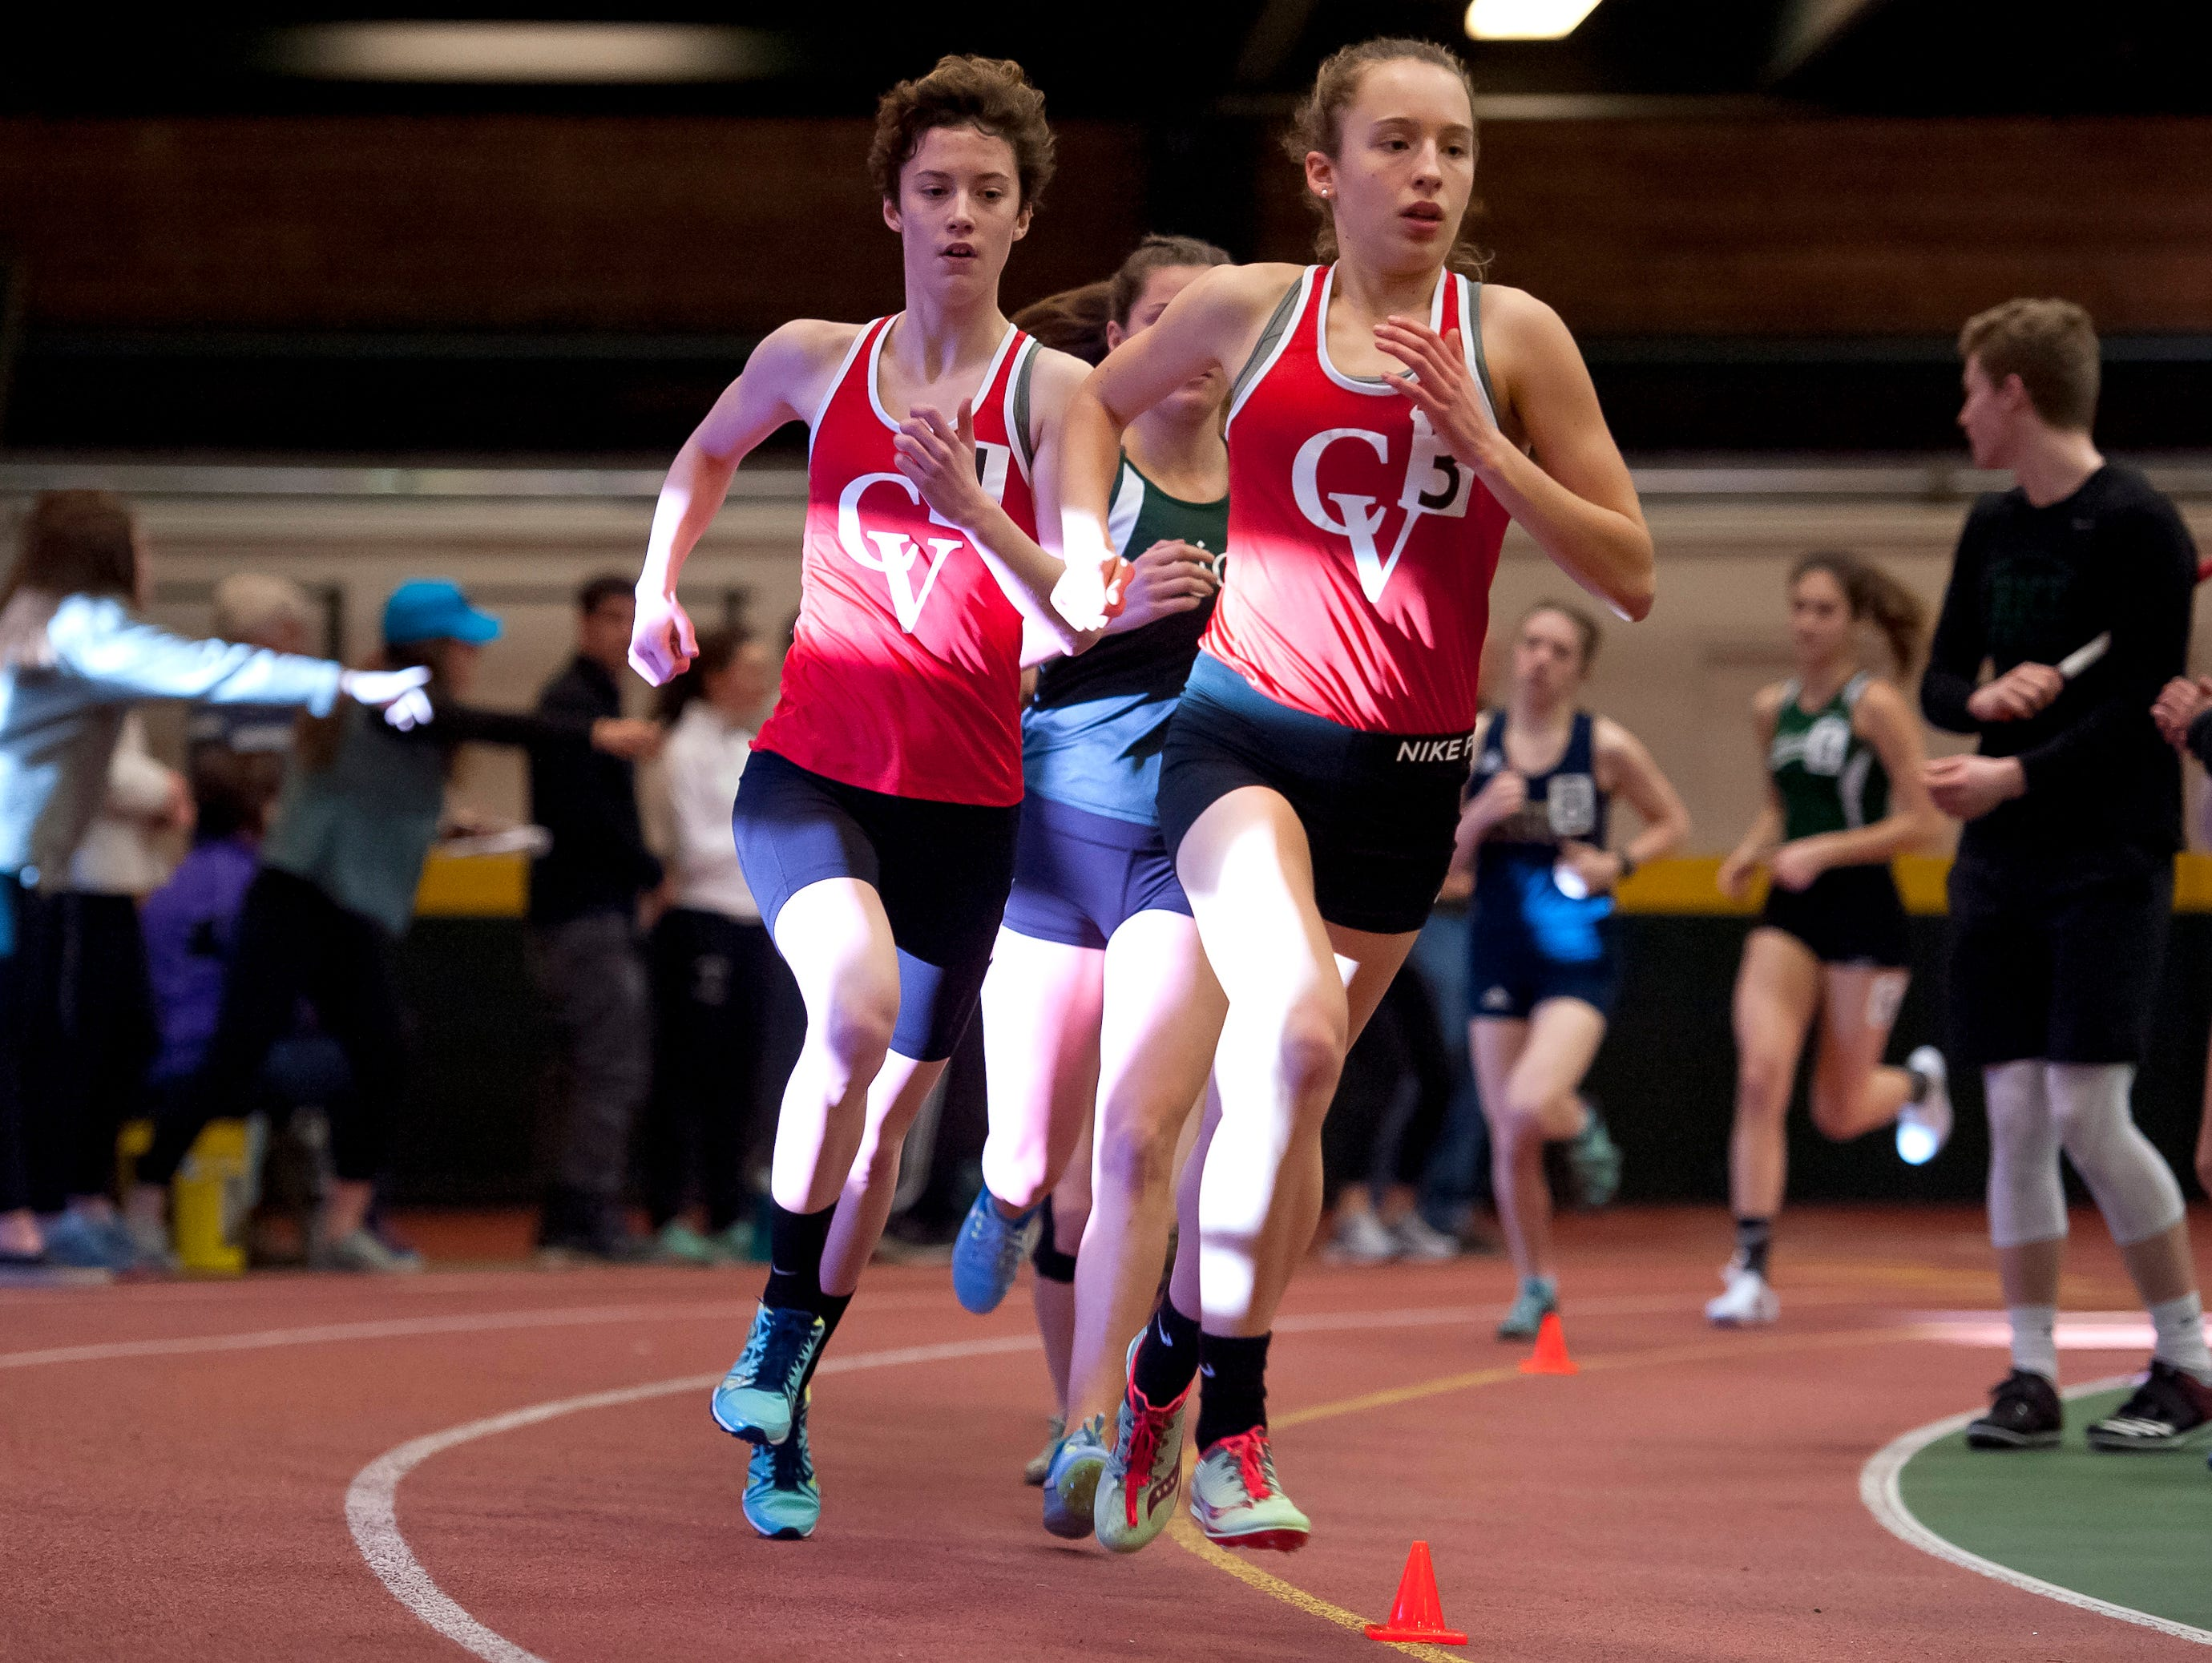 Champlain Valley's Alice Larson, left, and Ella Whitman take a corner in the girls 1,500 meters at the high school indoor track state championships at the University of Vermont on Saturday.